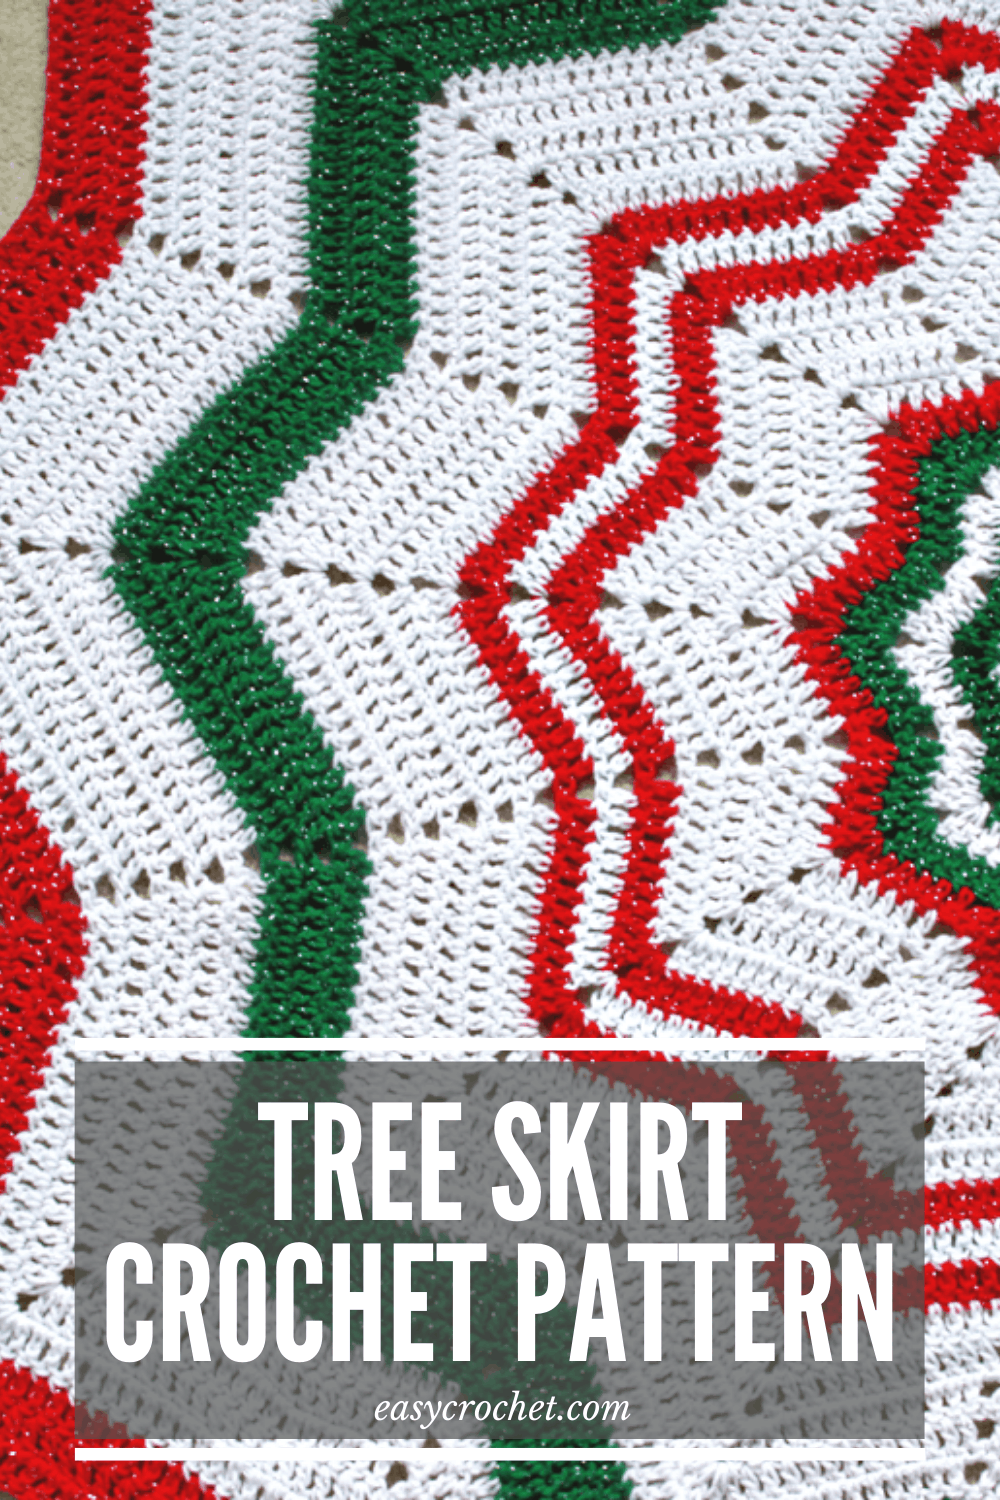 Tree Skirt Crochet Pattern to Crochet for this holiday Season! The perfect crochet Christmas crochet pattern via @easycrochetcom